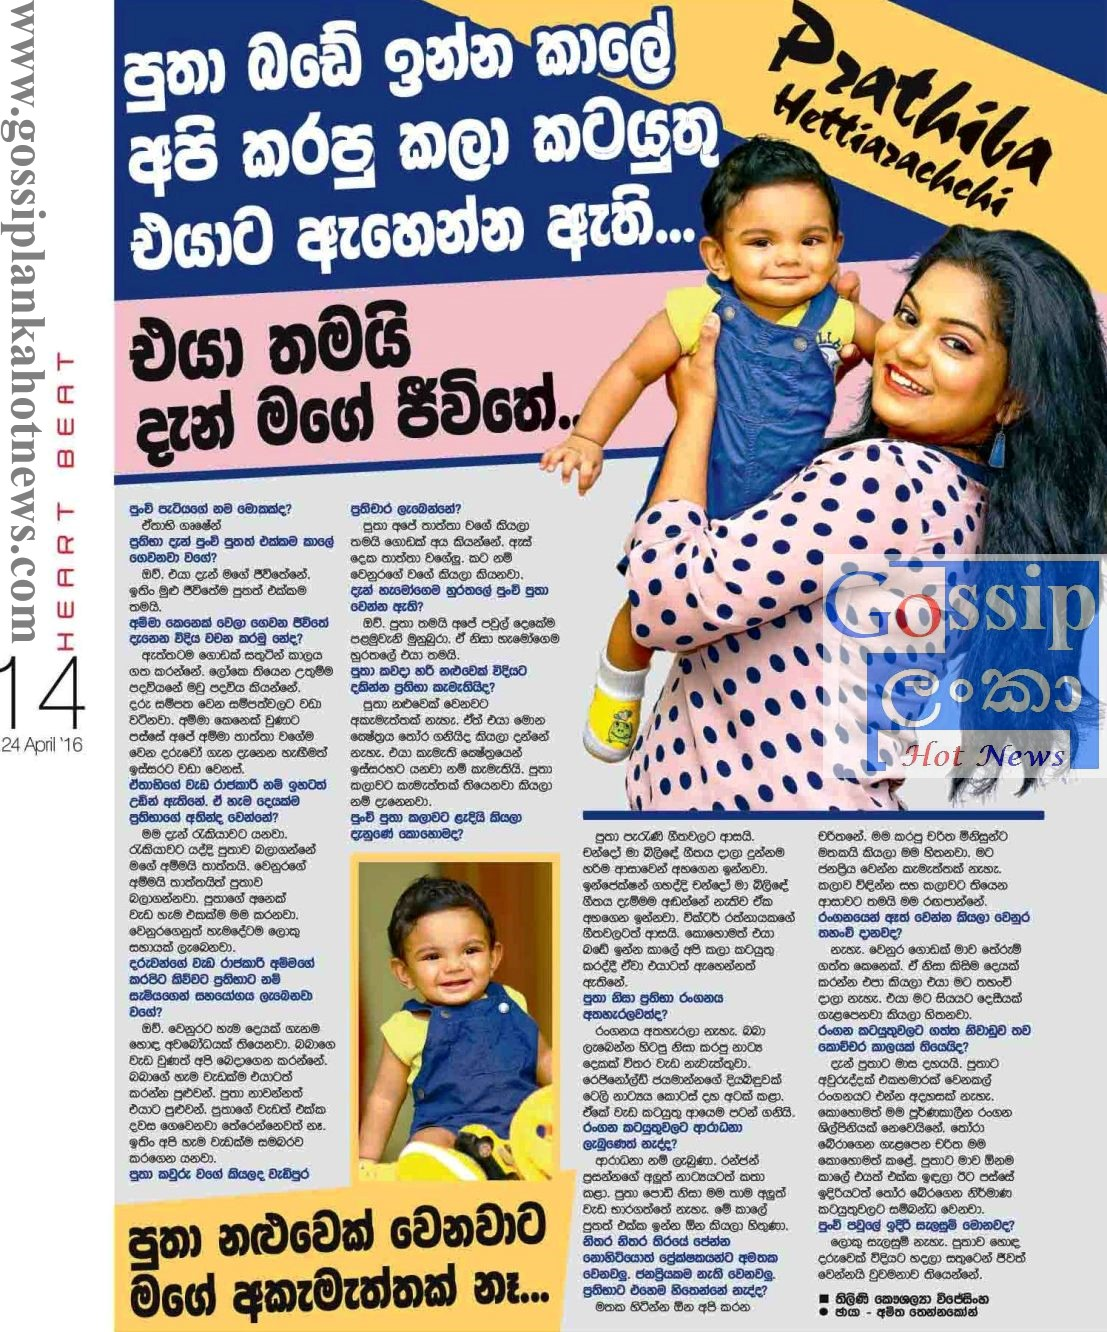 Interview with Prathibha Samadhinee Hettiarachchi